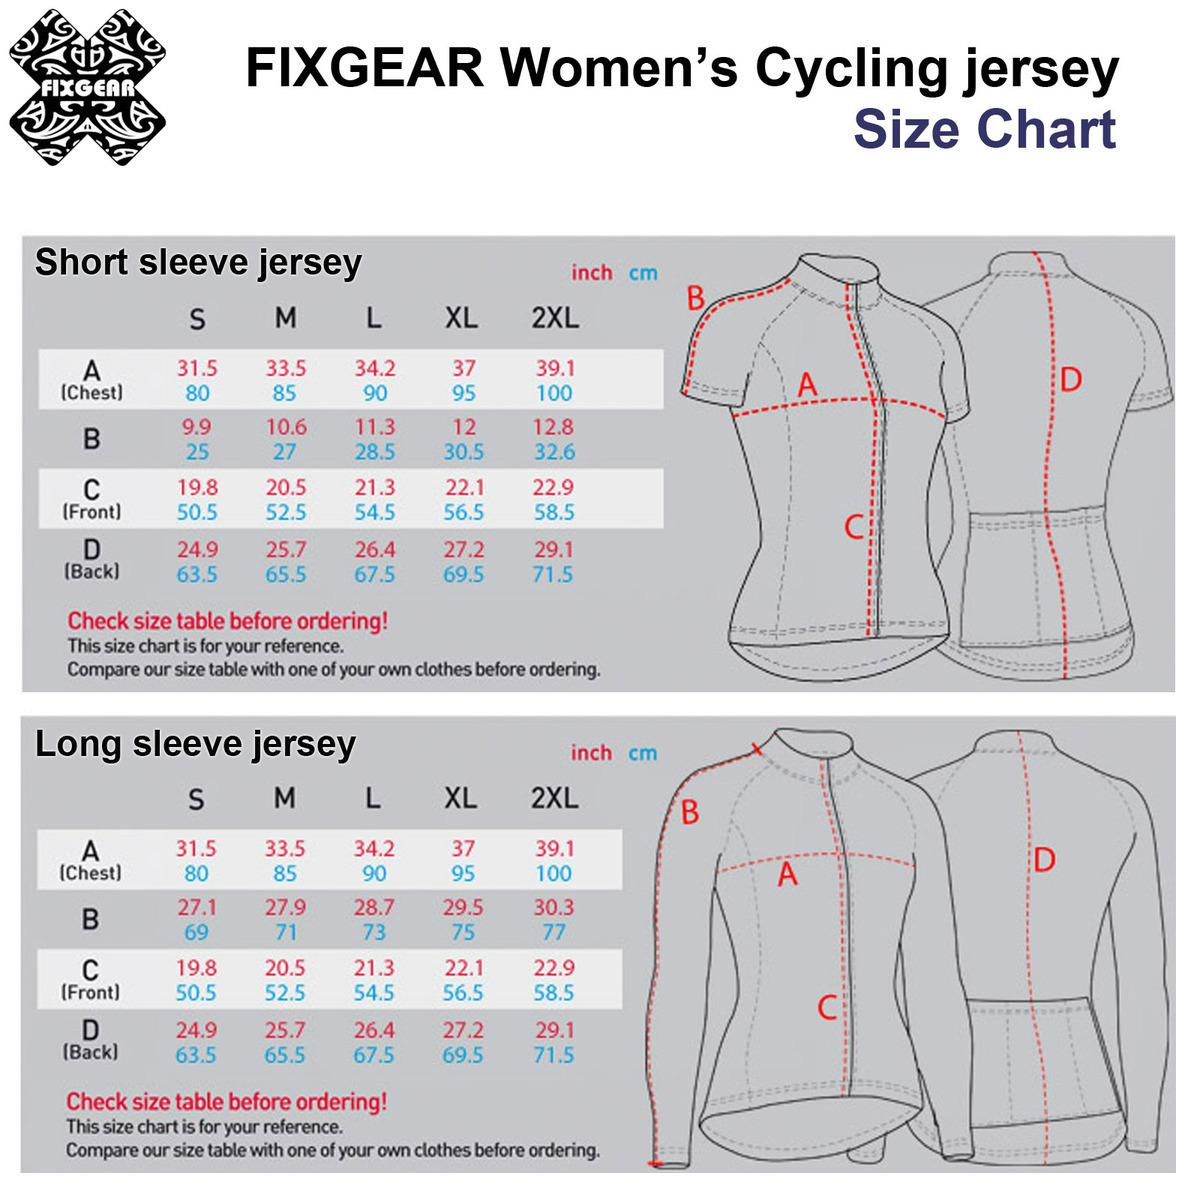 fixgear womens cycling jerseys sizing chart